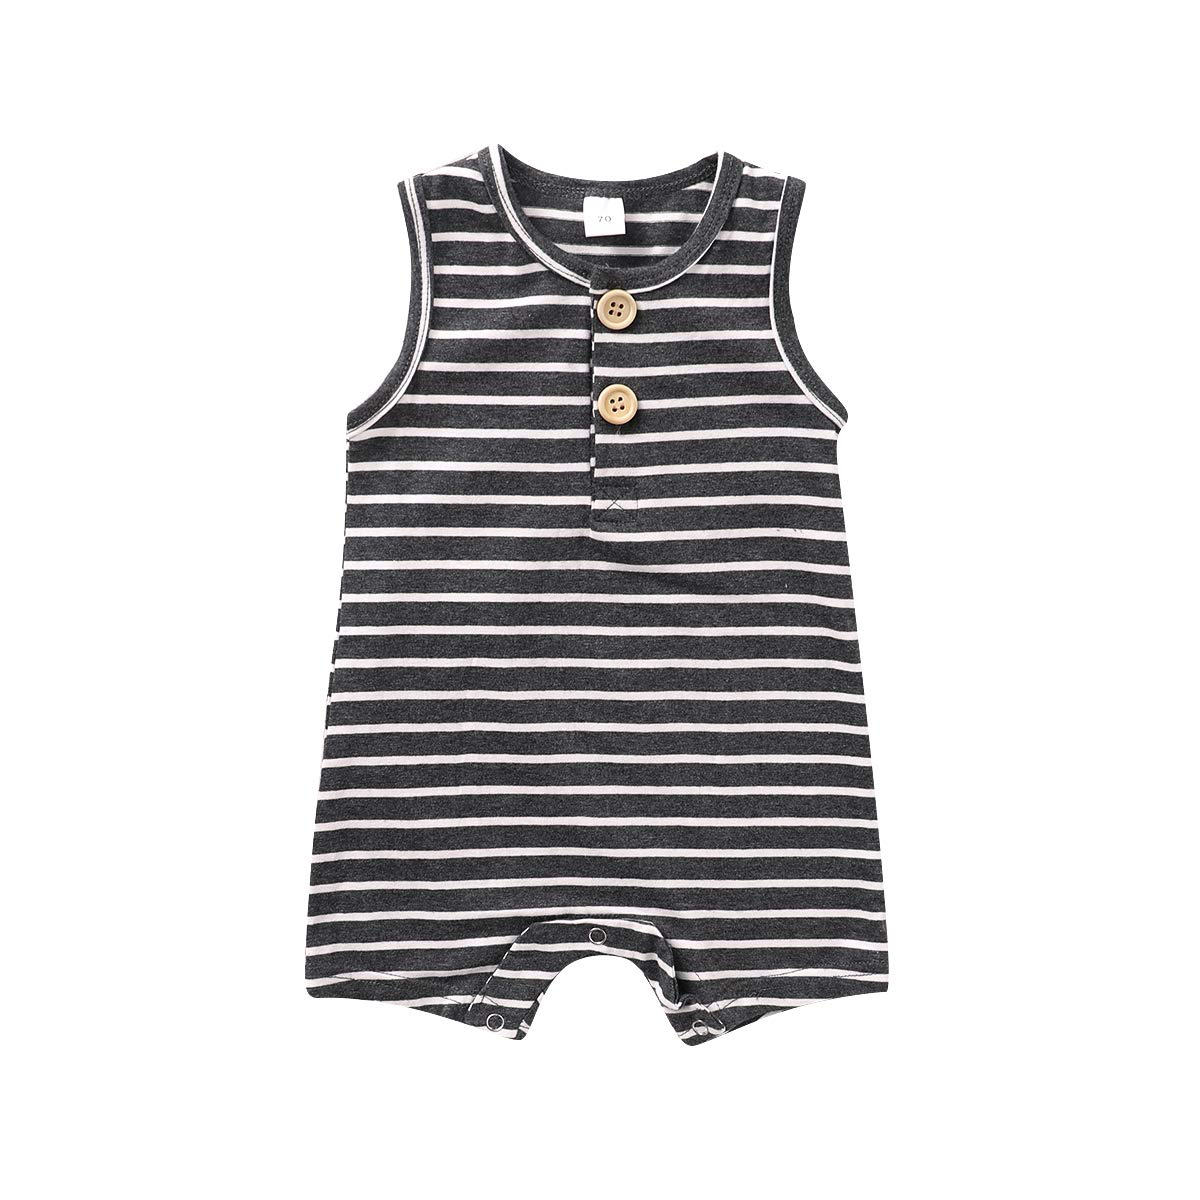 MODNTOGA Infant Unisex Baby Boy Girl Sleeveless Button Stripe Romper Bodysuit One Piece Jumpsuit Outfits Clothes